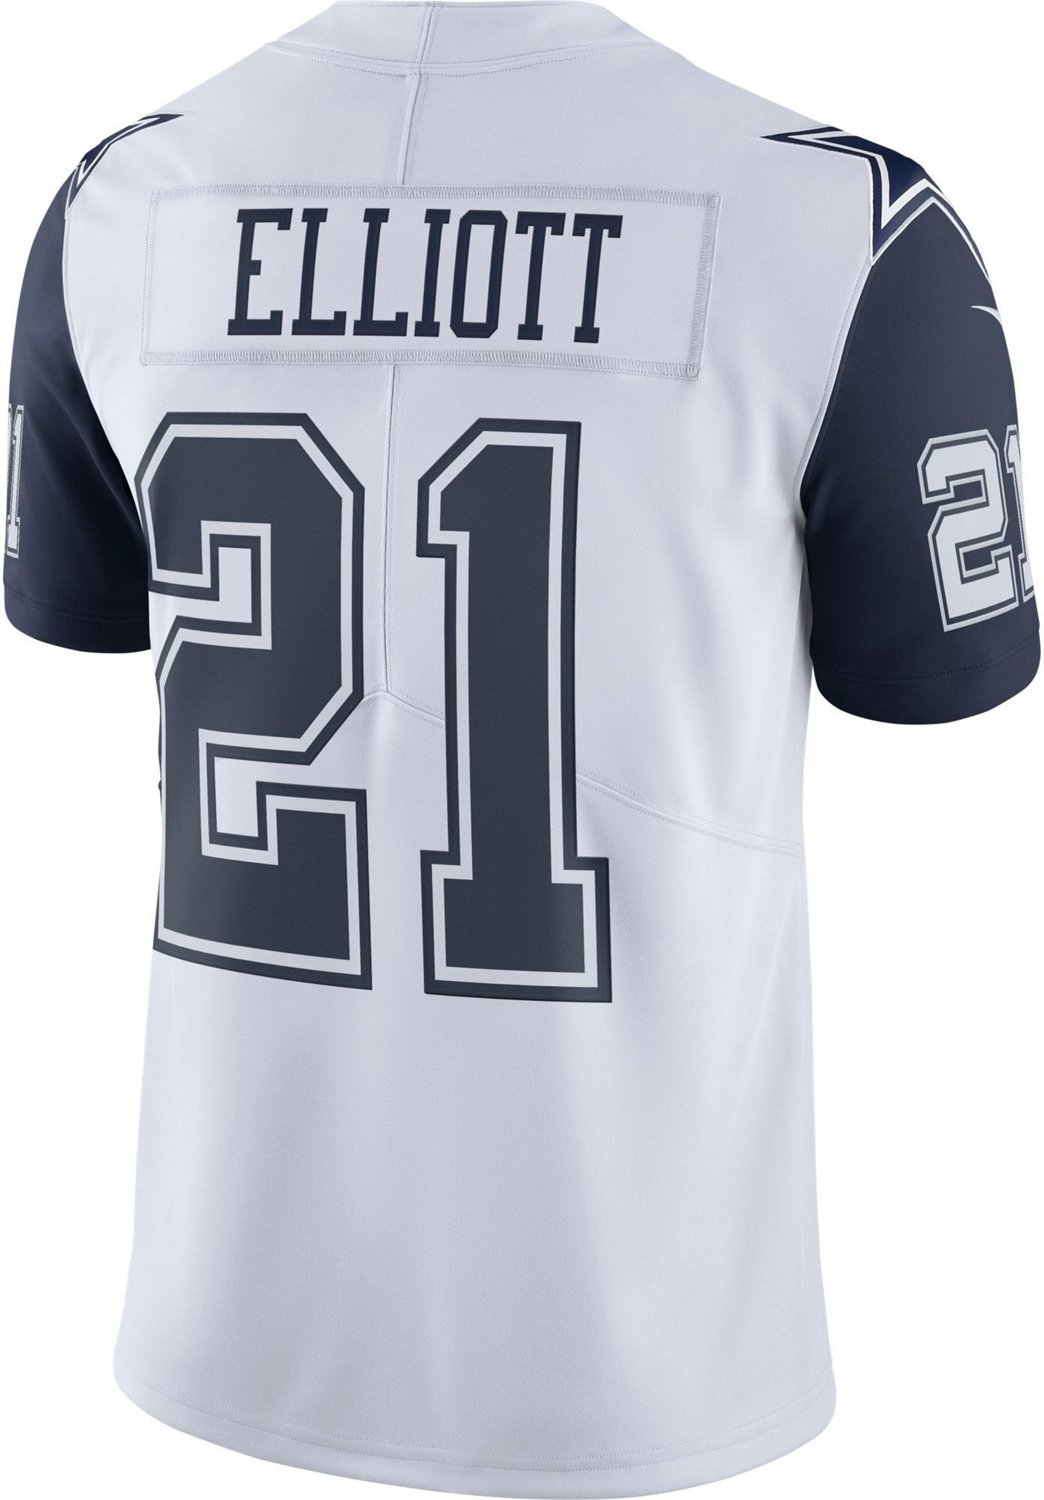 wholesale dealer 7c834 3fd14 Nike Men's Dallas Cowboys Ezekiel Elliott XC1 Color Rush Jersey